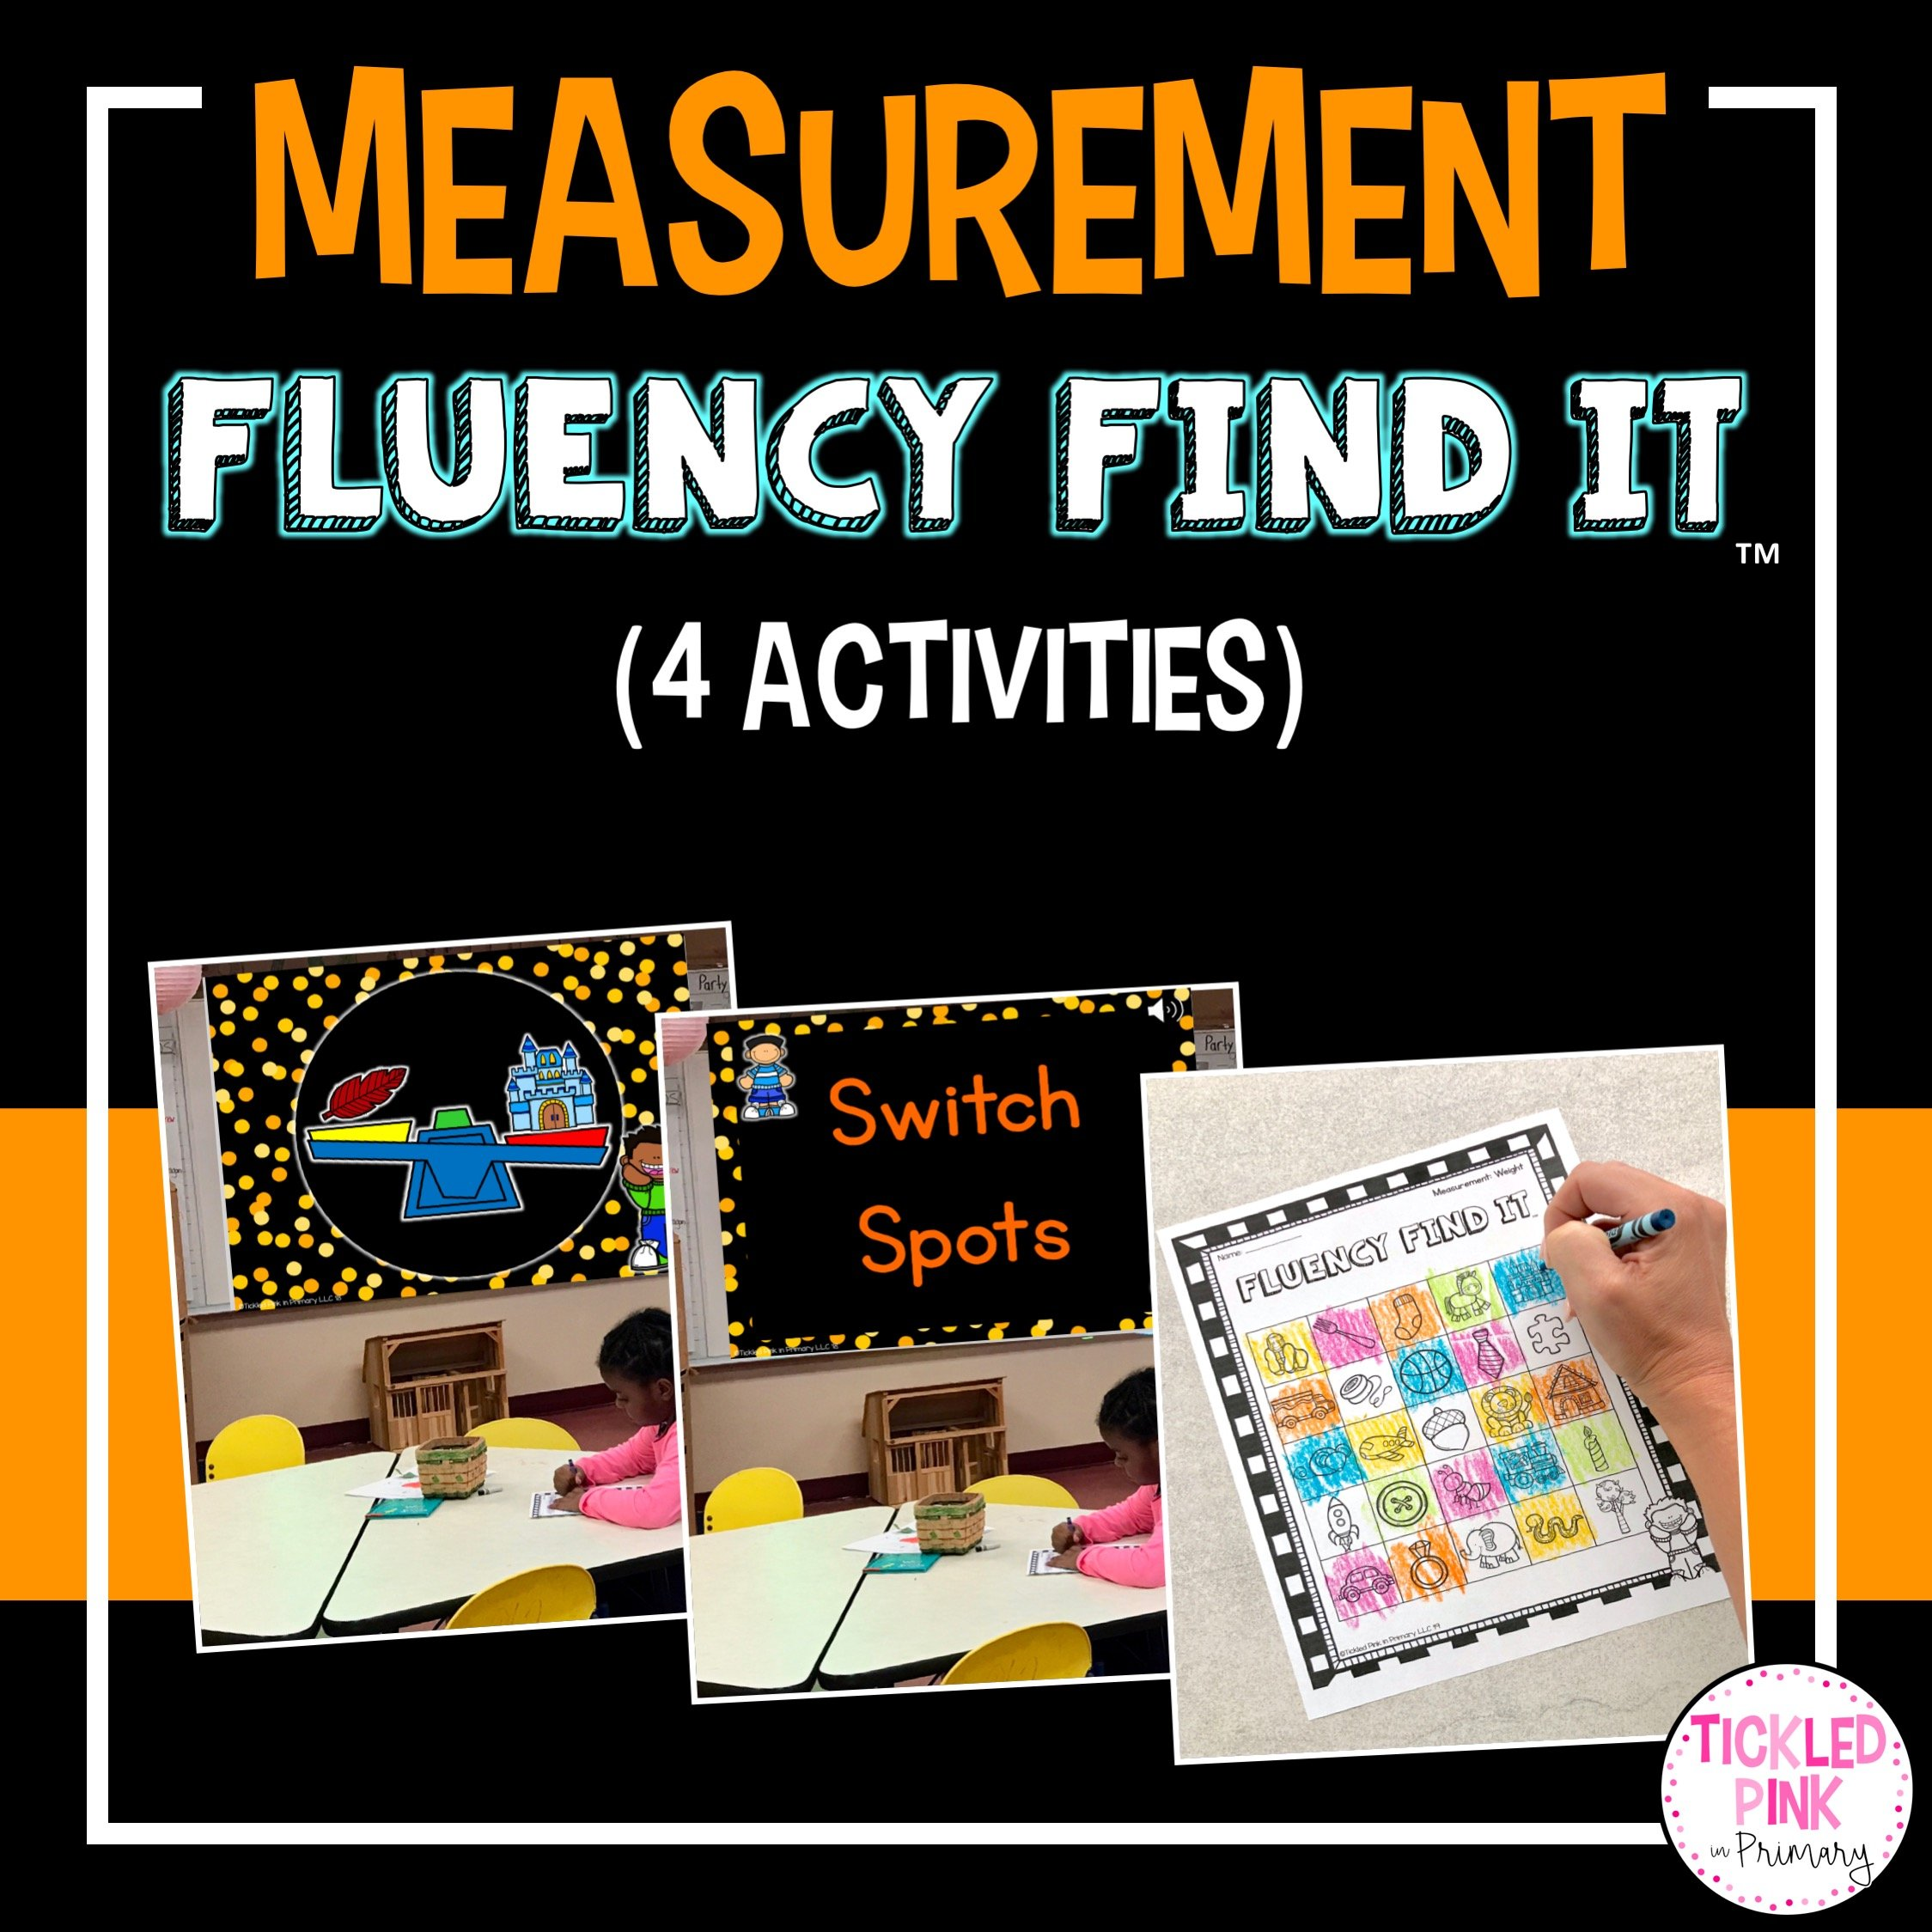 Measurement Fluency Find It Tickled Pink In Primary